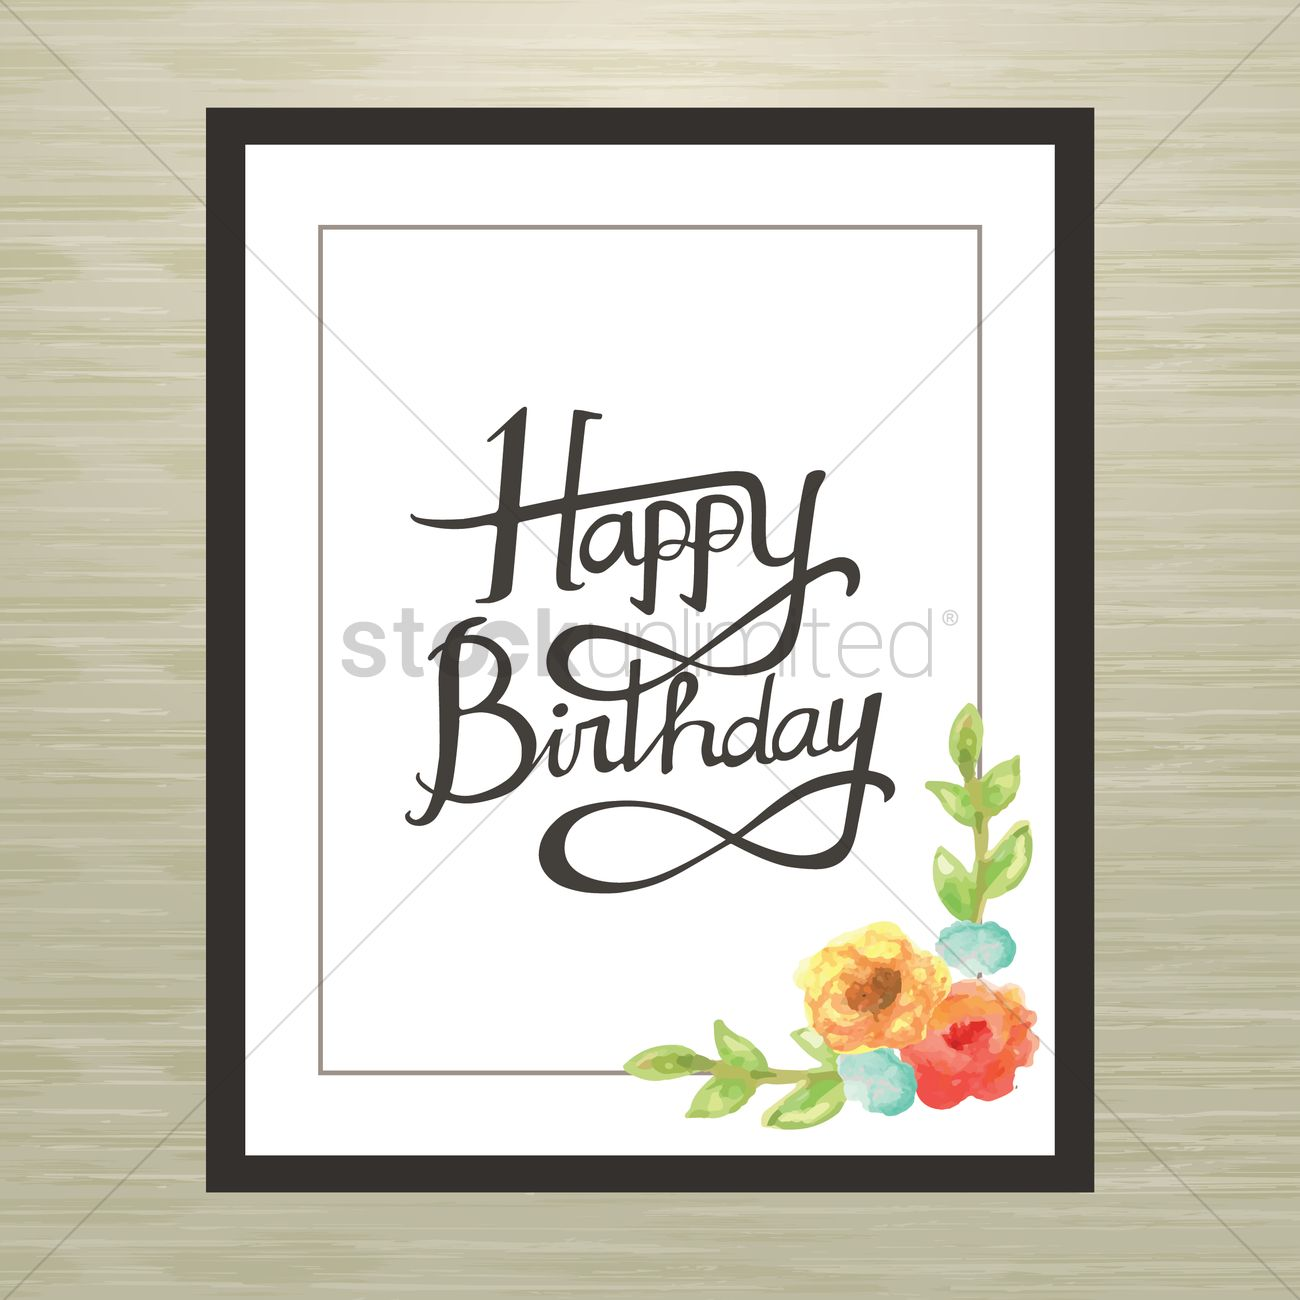 Happy birthday frame Vector Image - 1996156 | StockUnlimited